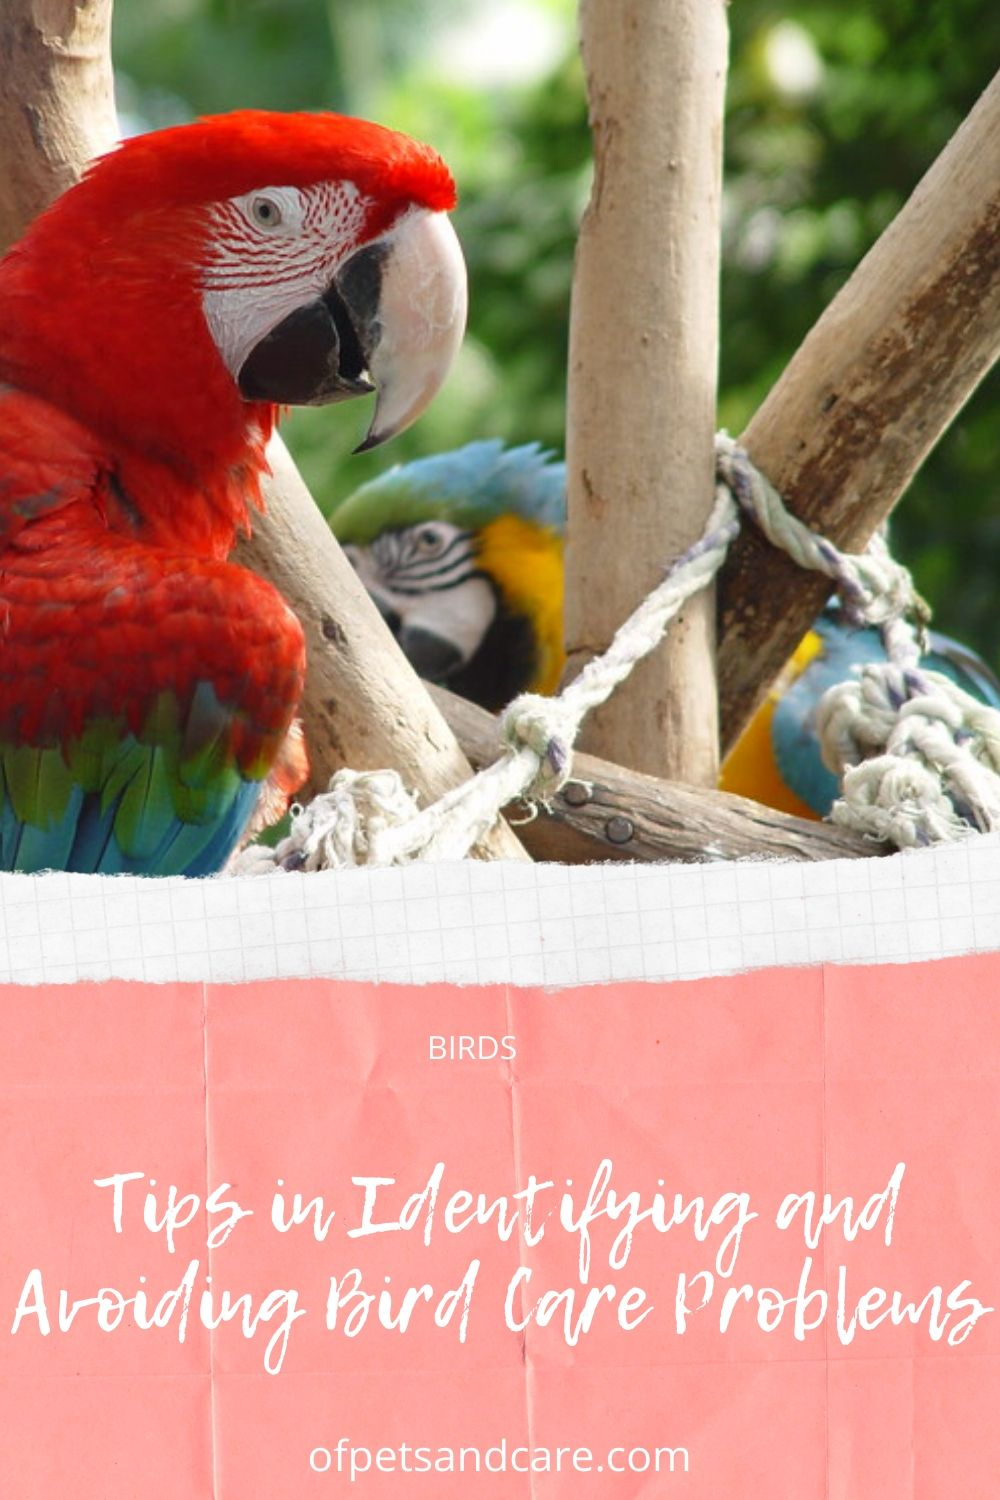 Tips in Identifying and Avoiding Bird Care Problems